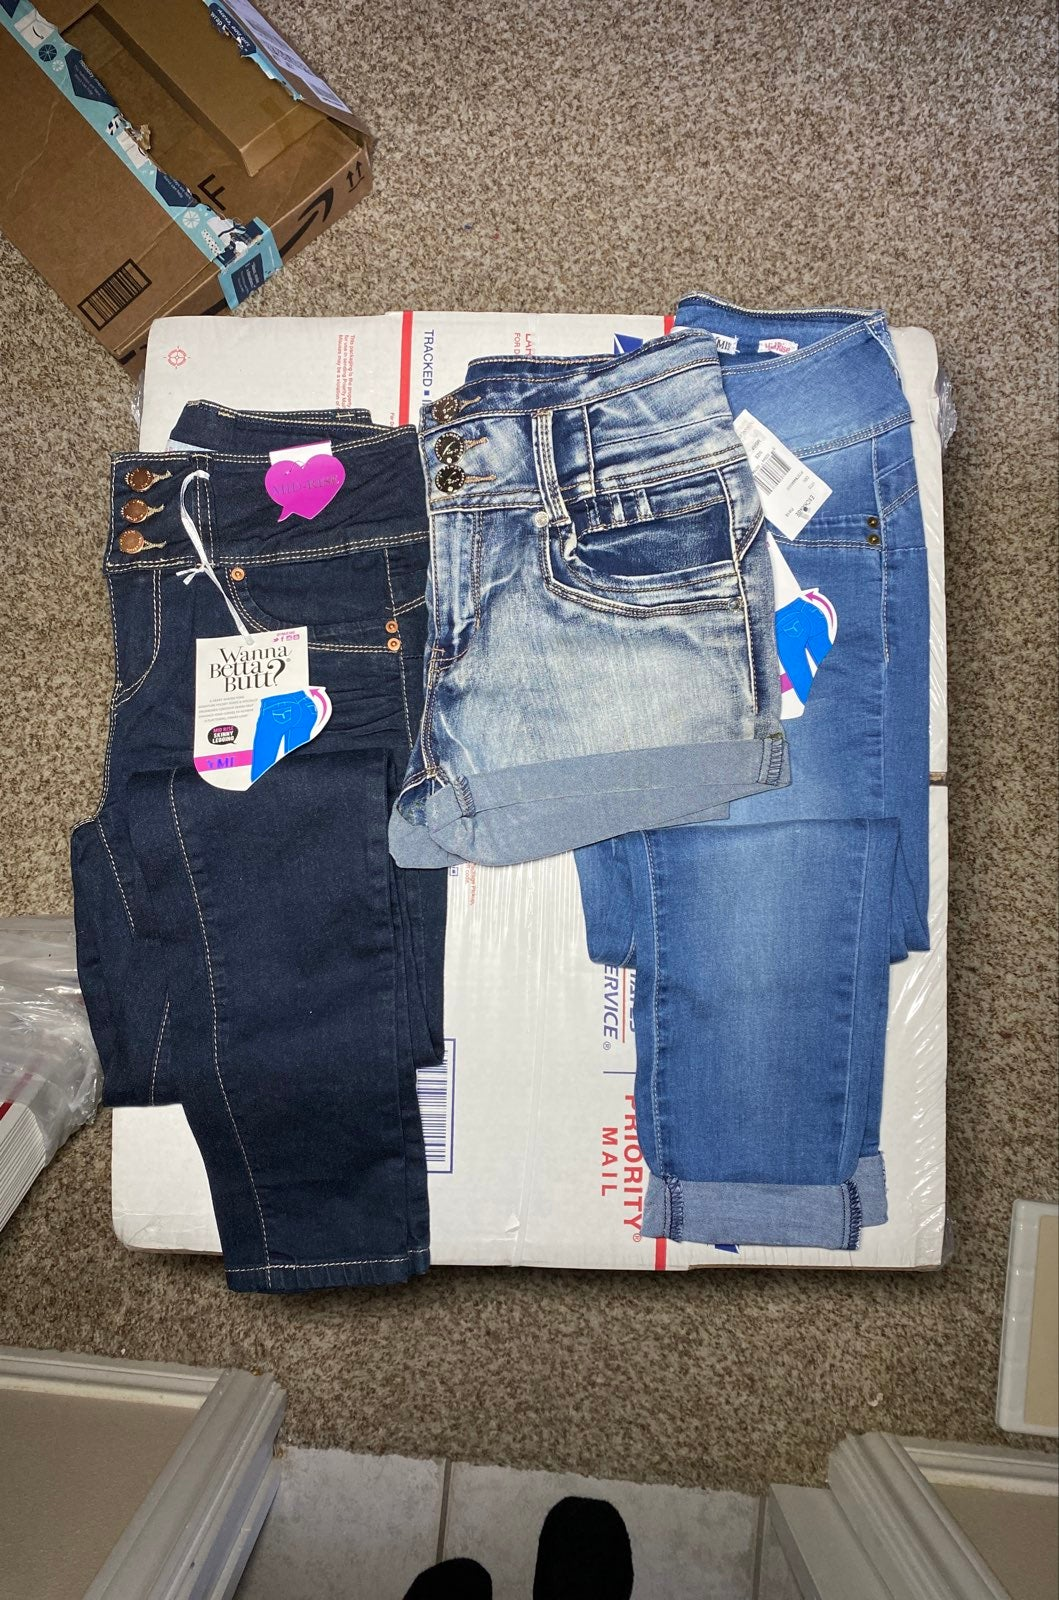 Size 3 Betta Butt Jeans/ shorts bundle